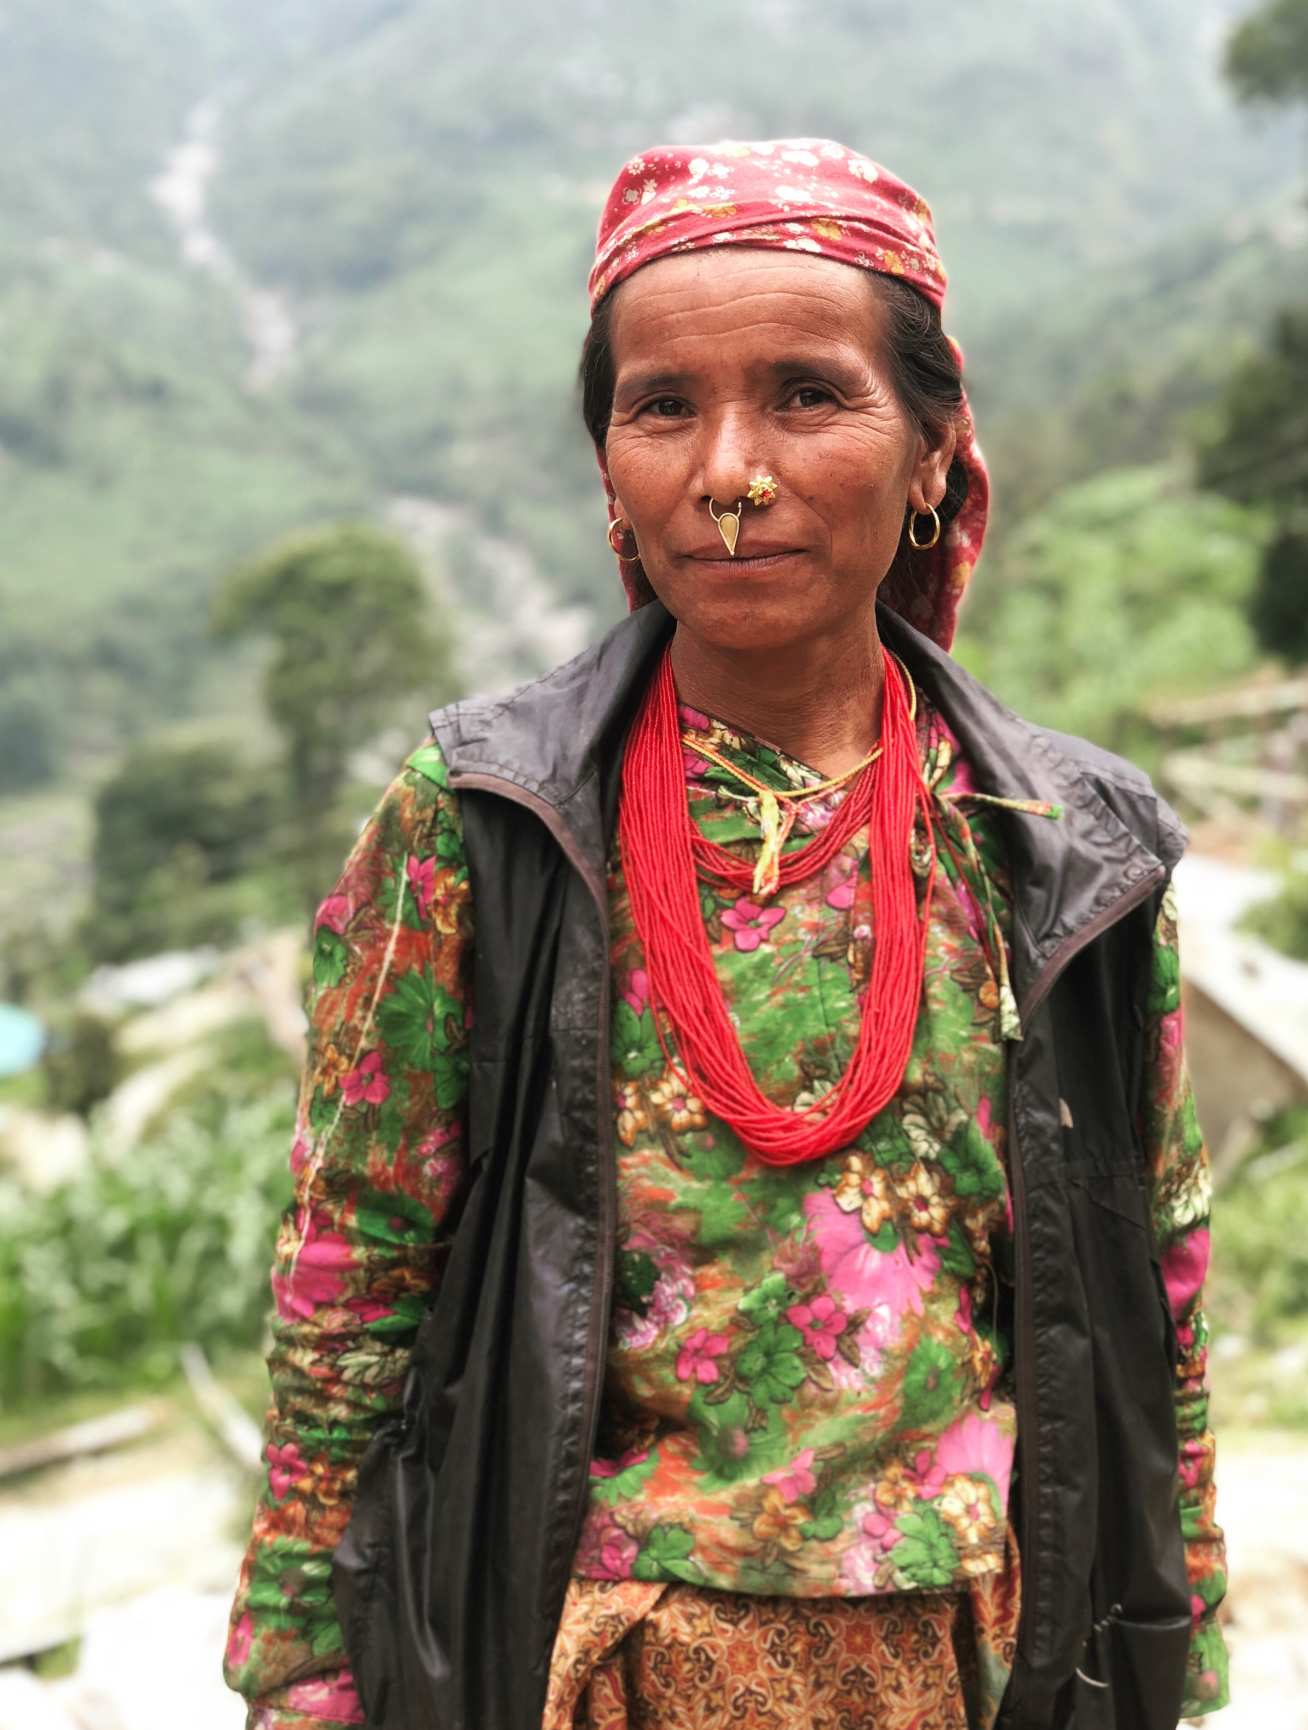 A Nepalese lady in front of landscape